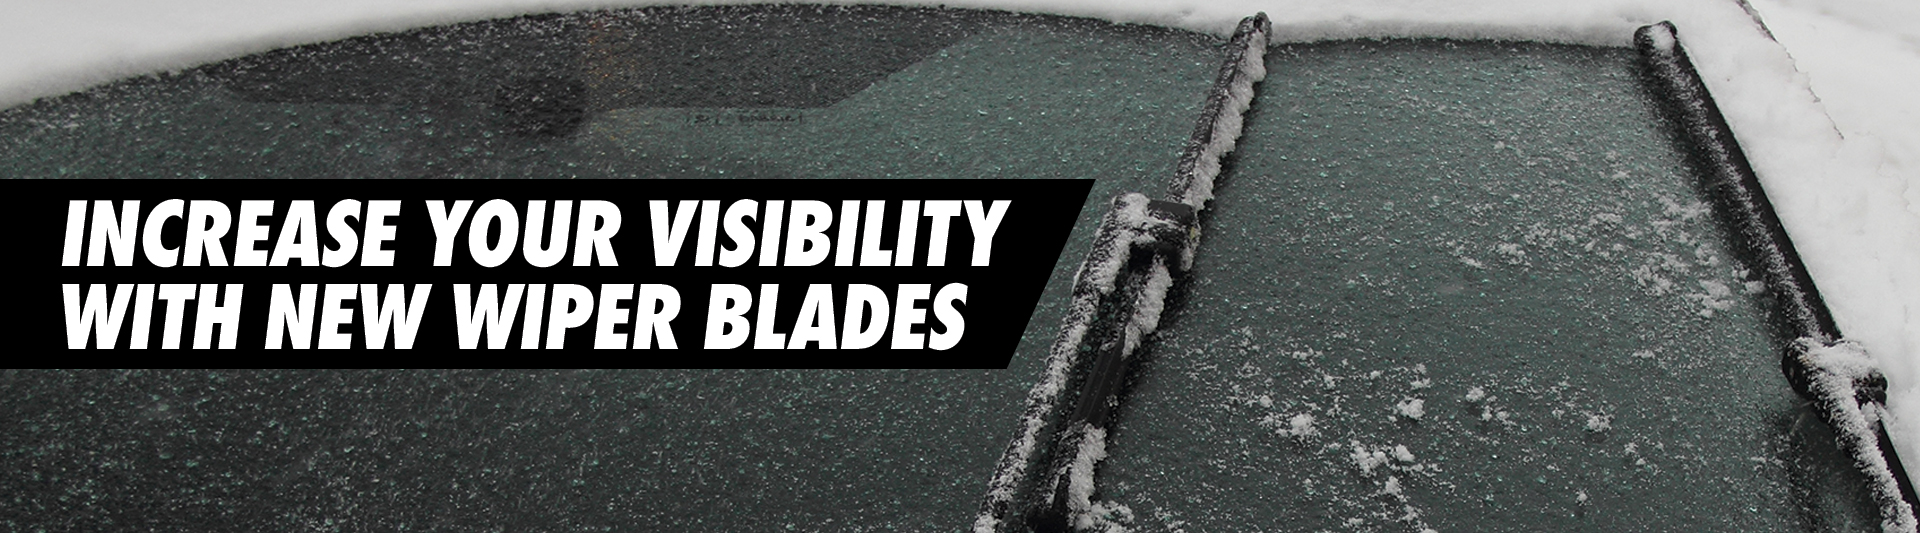 Increase your visibility with new wiper blades